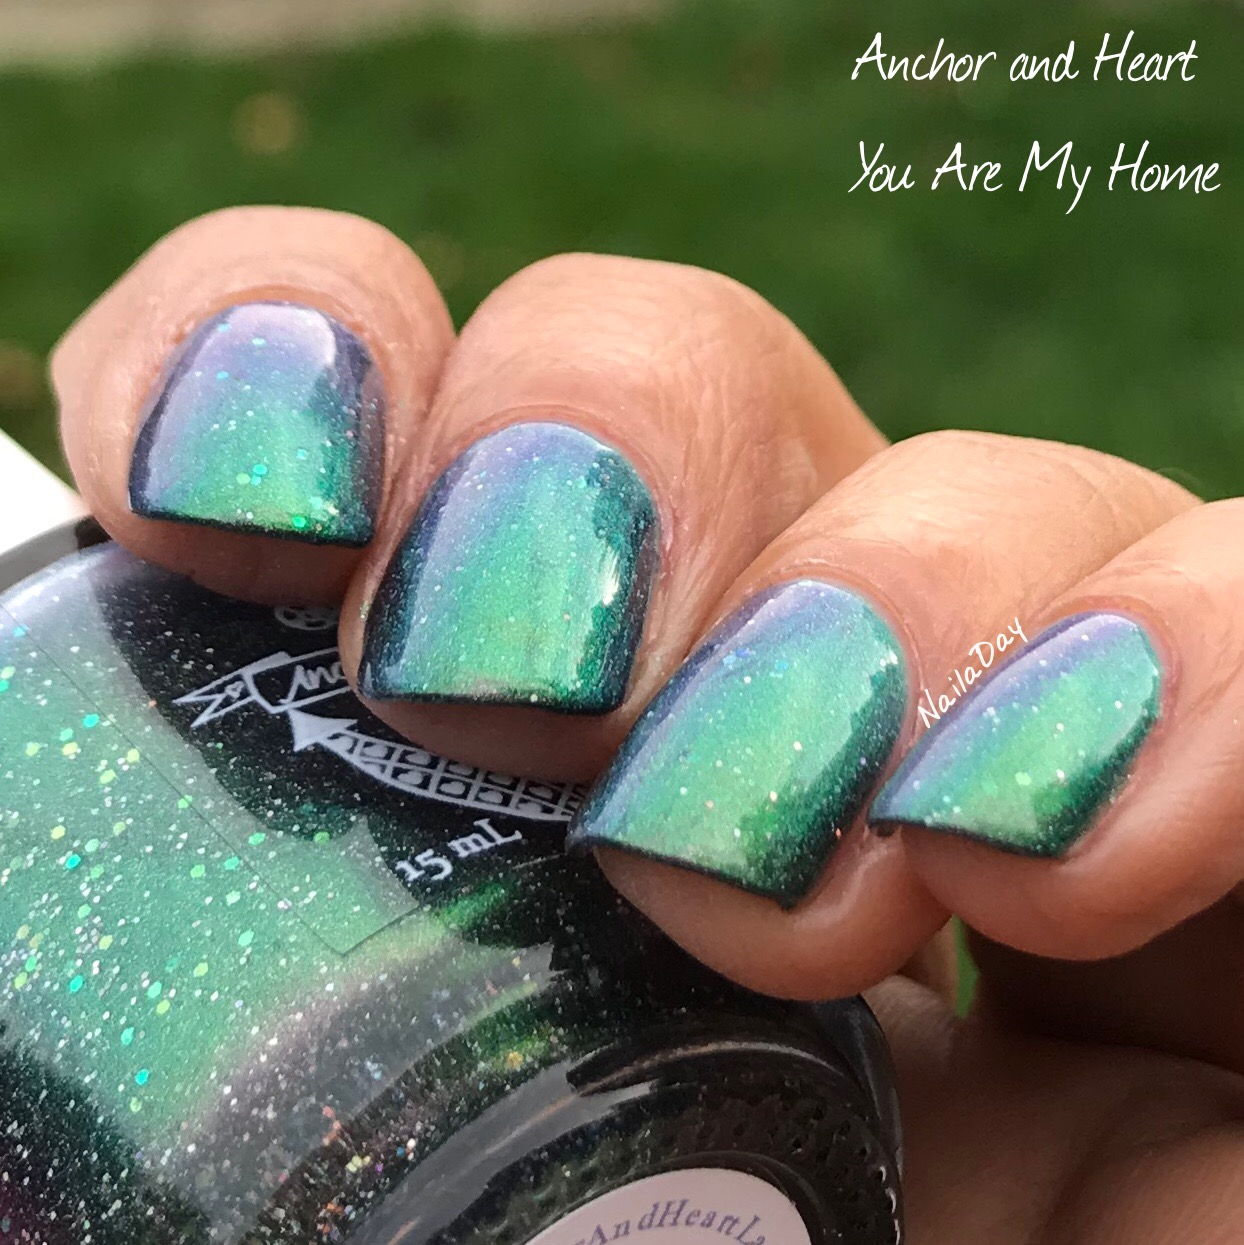 NailaDay: Anchor & Heart You Are My Home